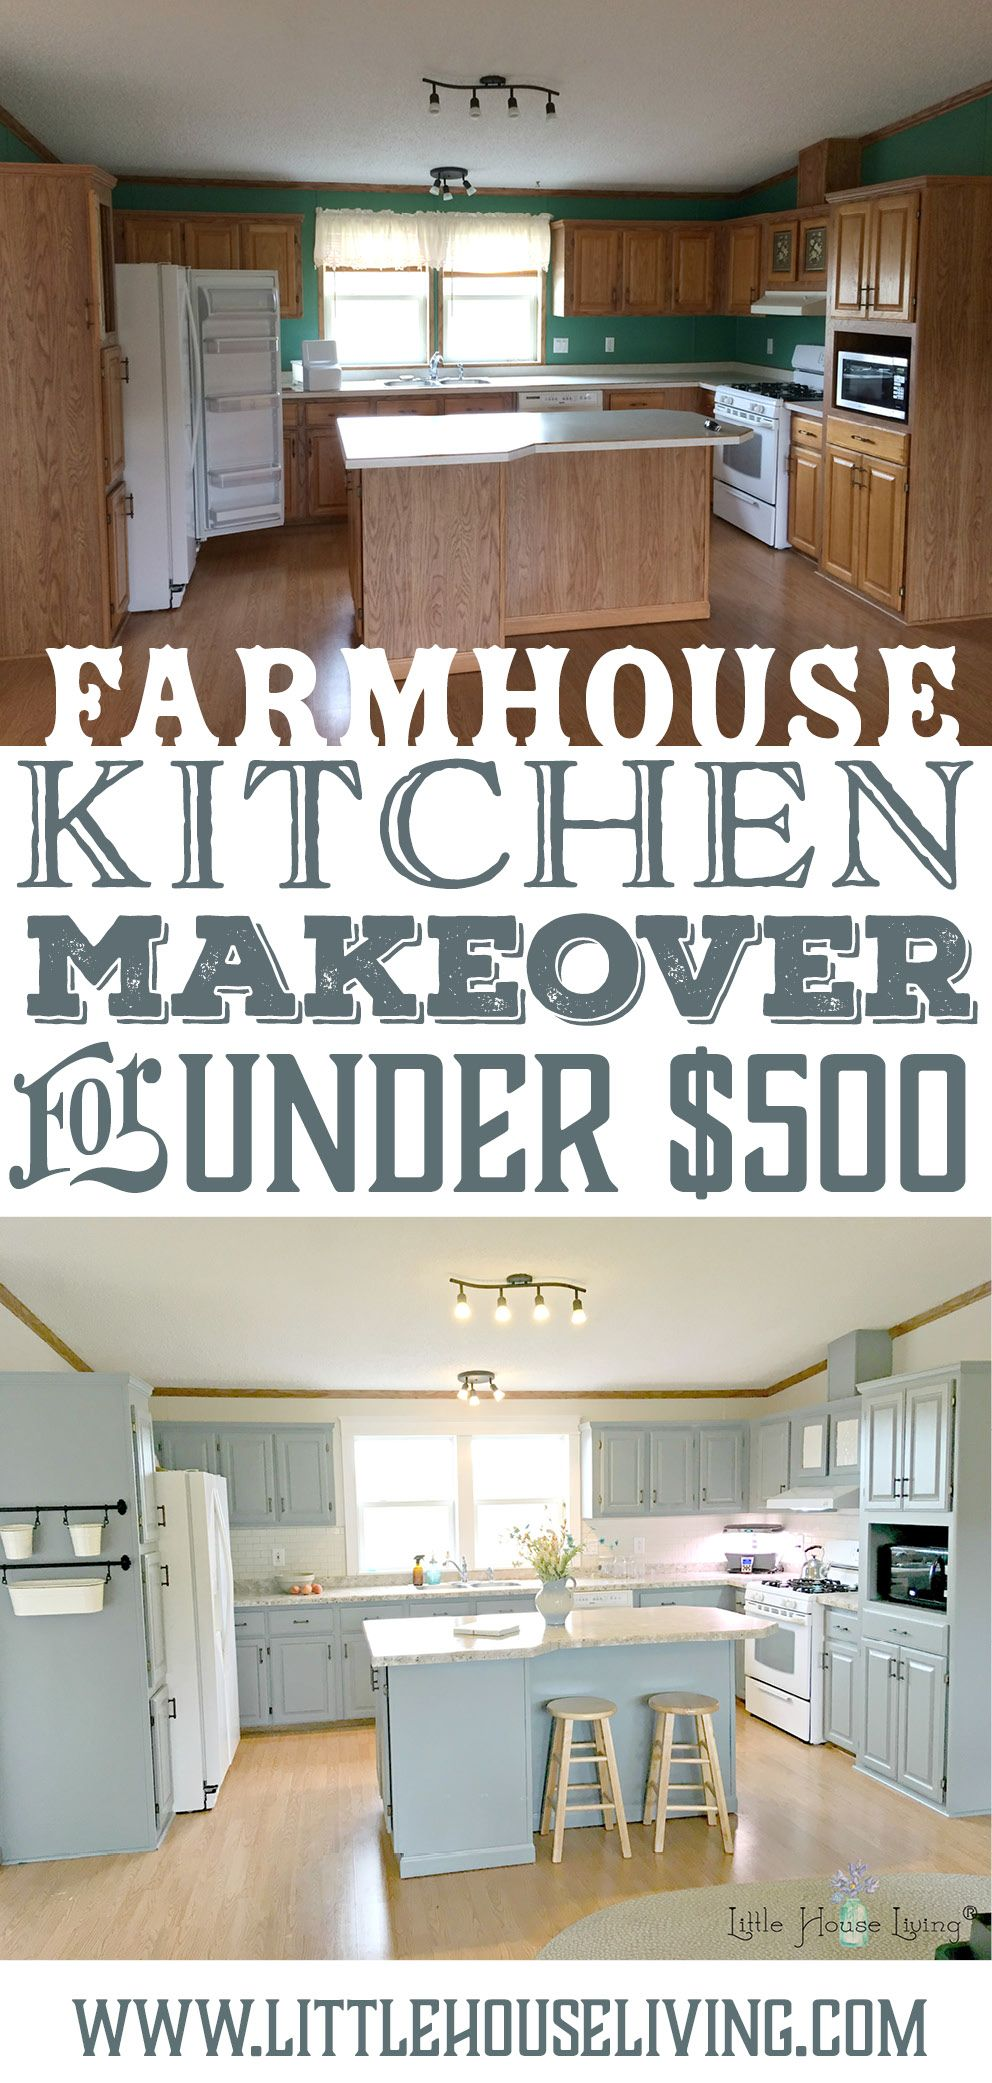 Farmhouse Style Kitchen Makeover for Under $500 -   24 farmhouse style on a budget